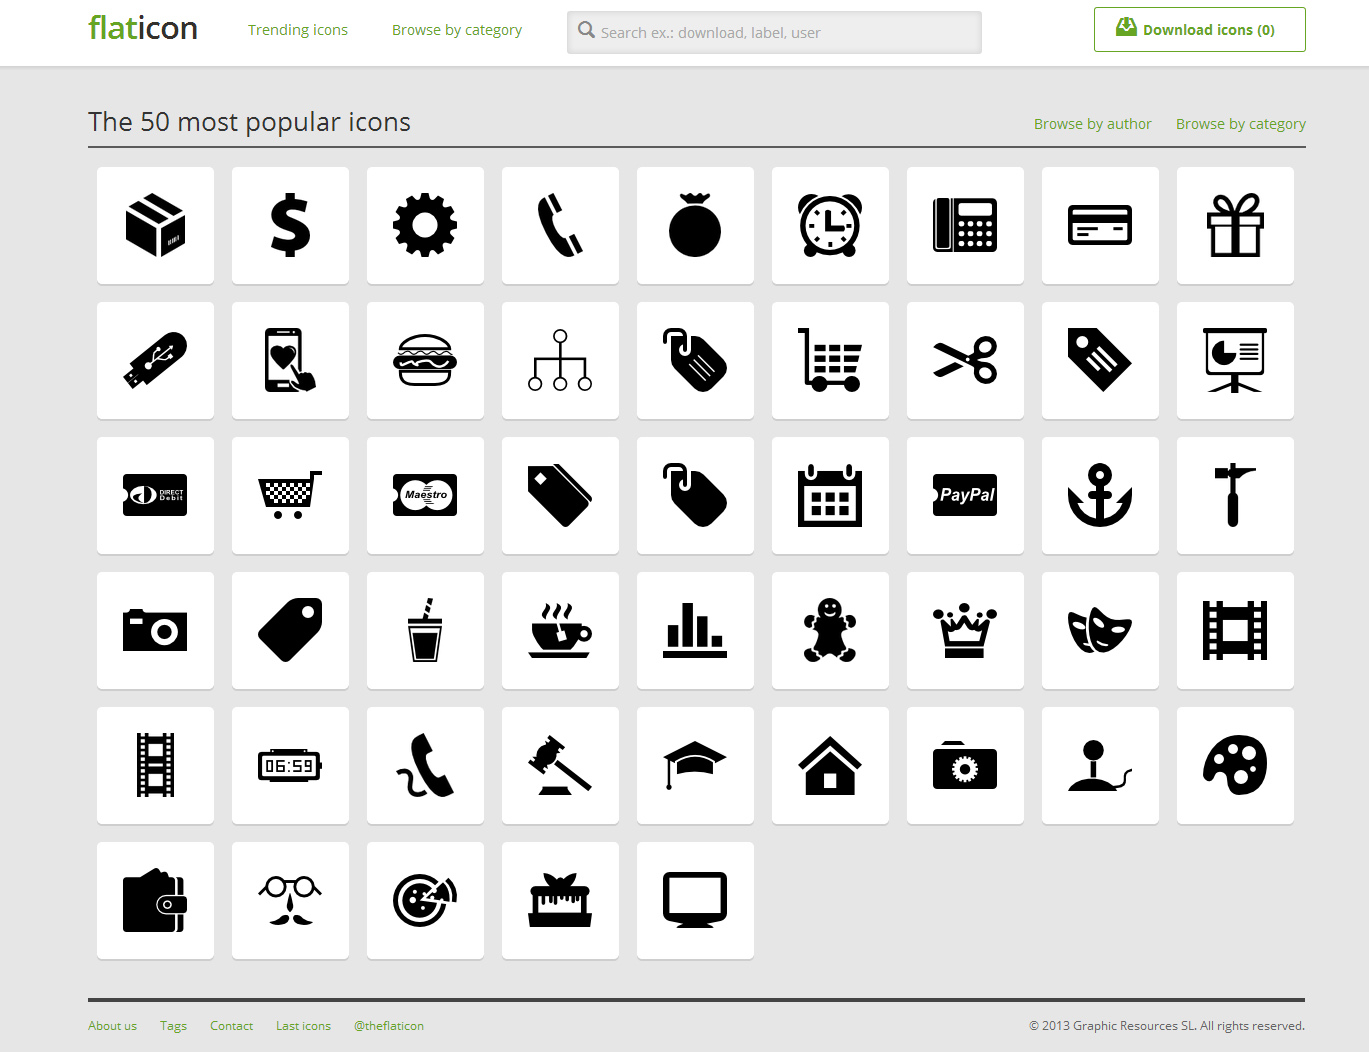 Download free vector icons as SVG, PNG or WebFont directly in your.